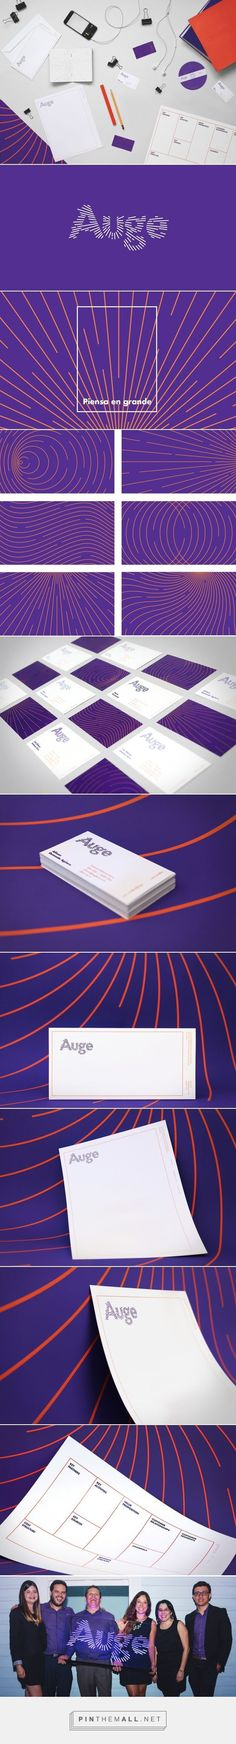 Auge on Behance - created via https://pinthemall.net